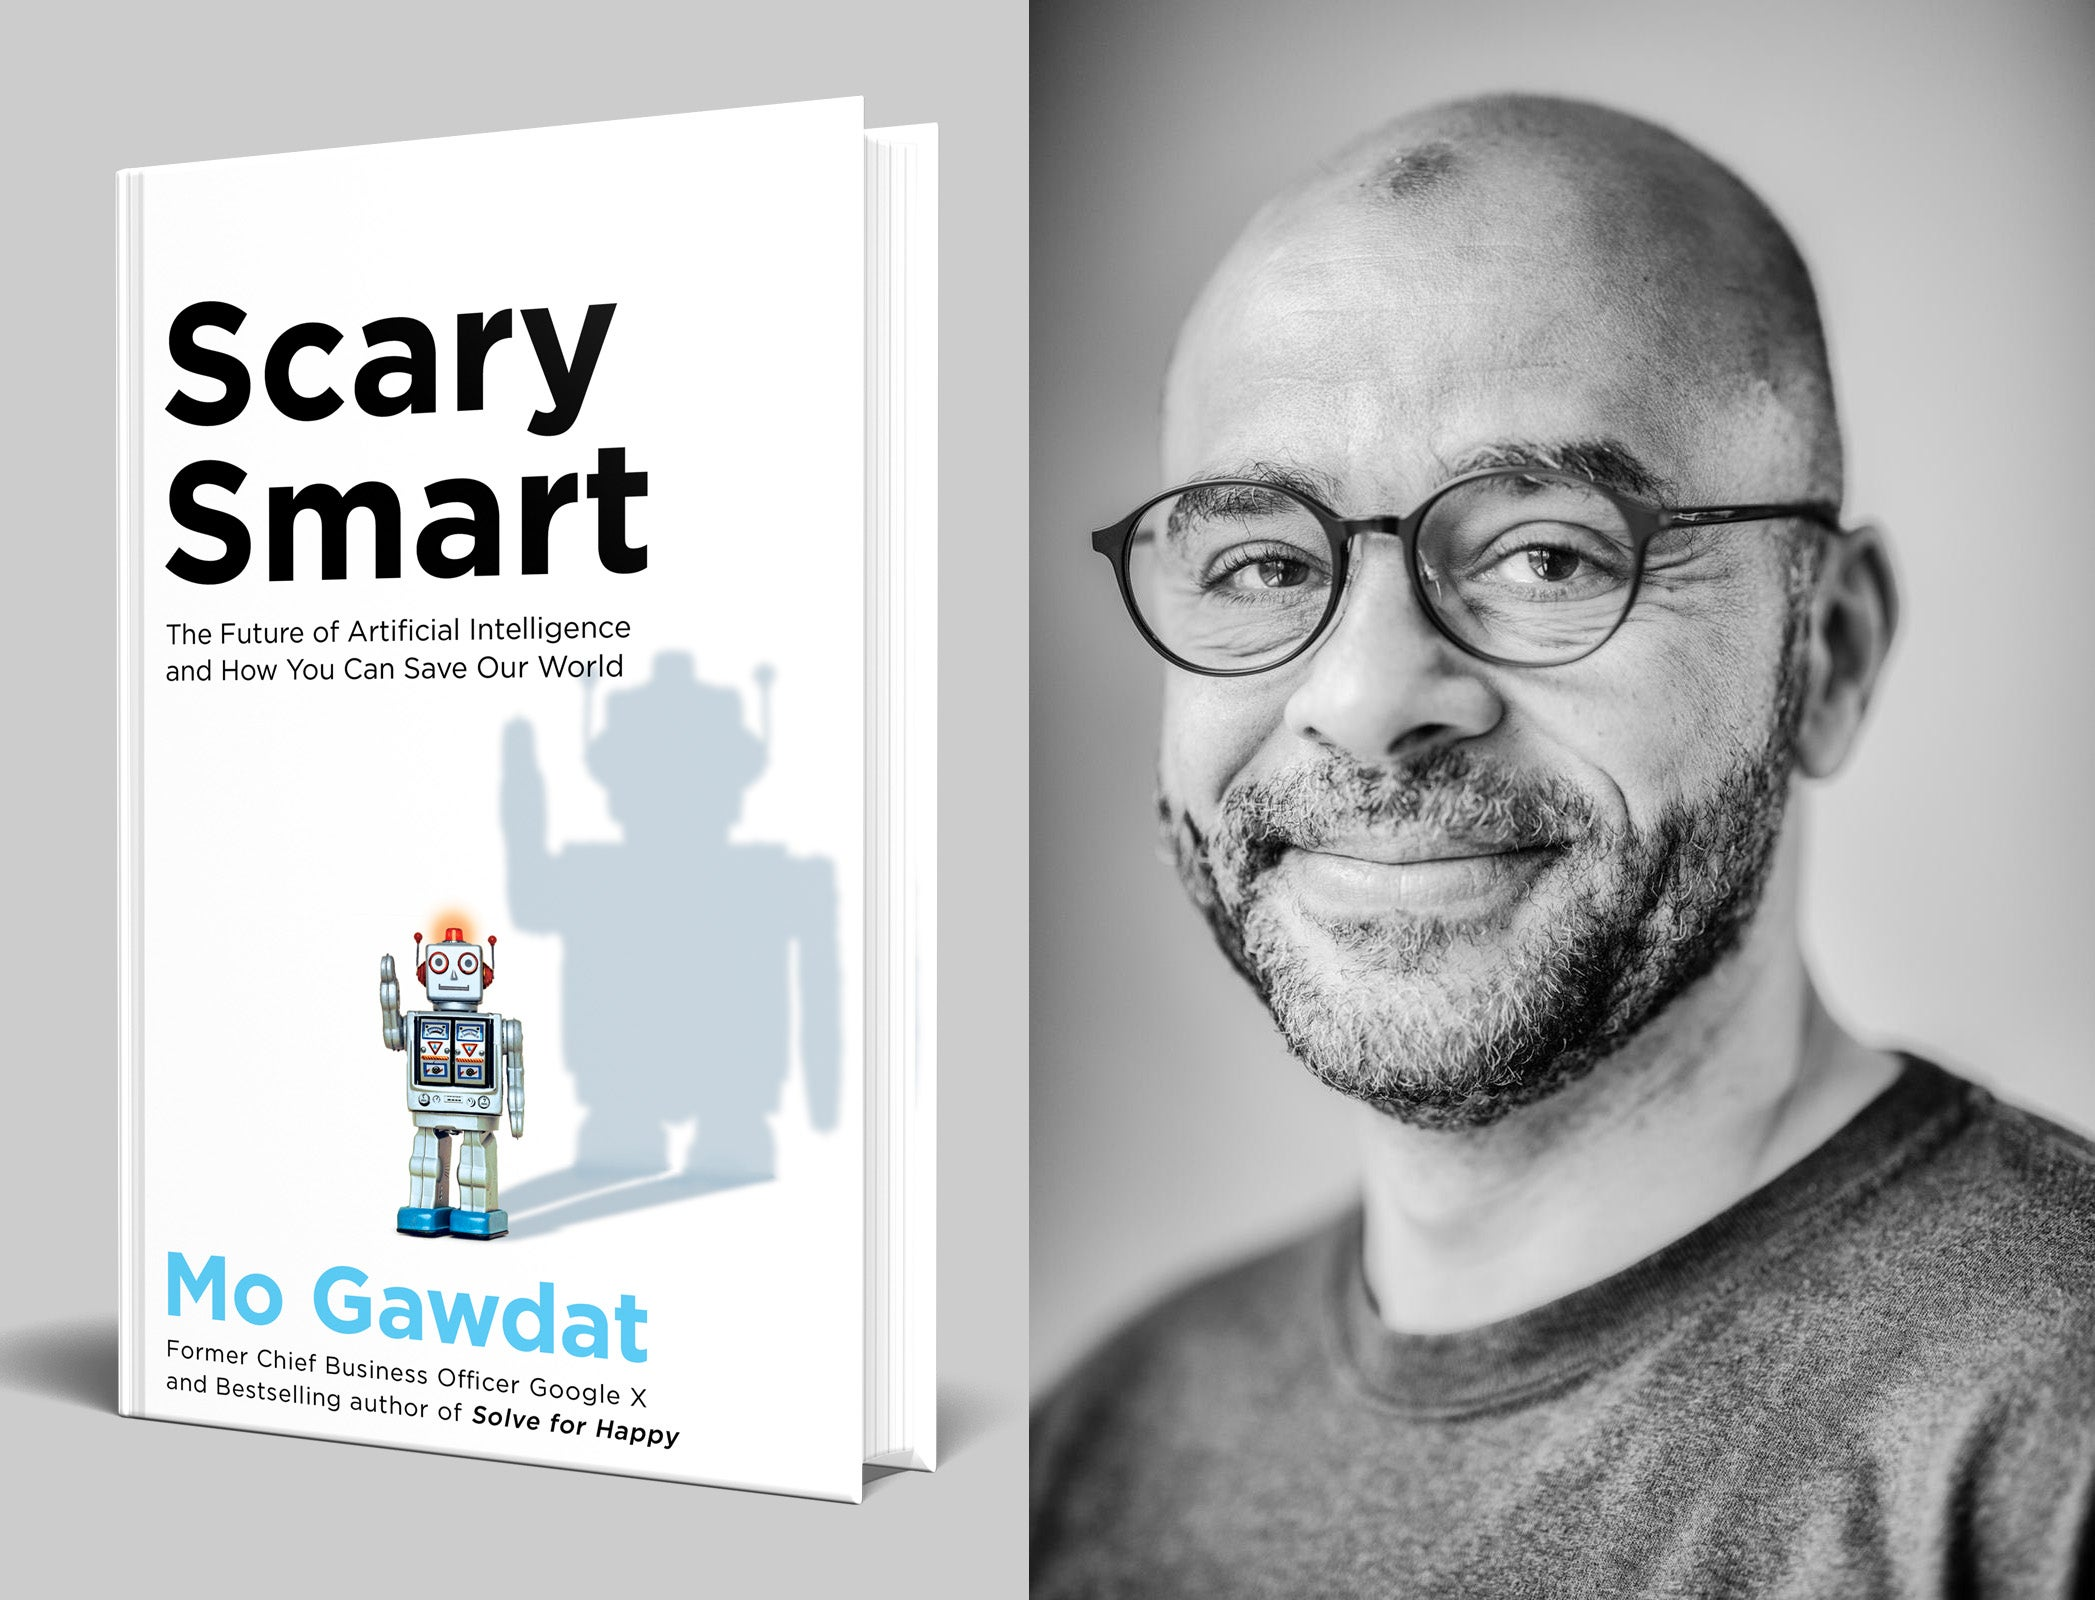 An image of Scary Smart and the author Mo Gawdat